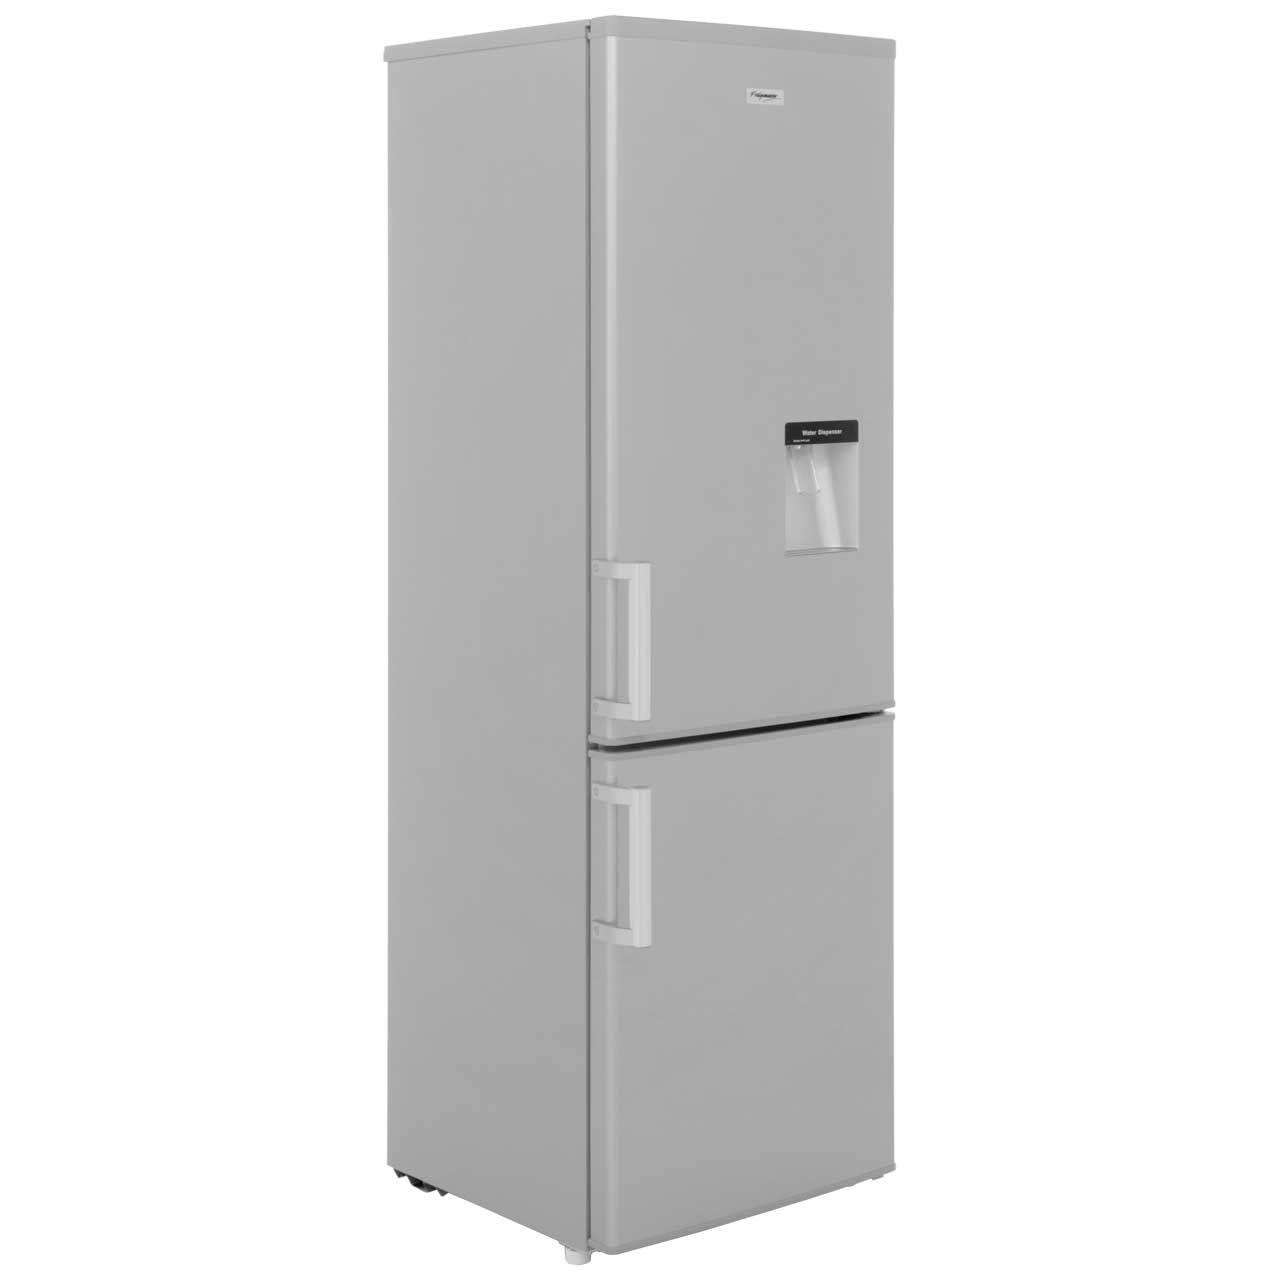 Fridgemaster MC55244D Free Standing Fridge Freezer in Silver